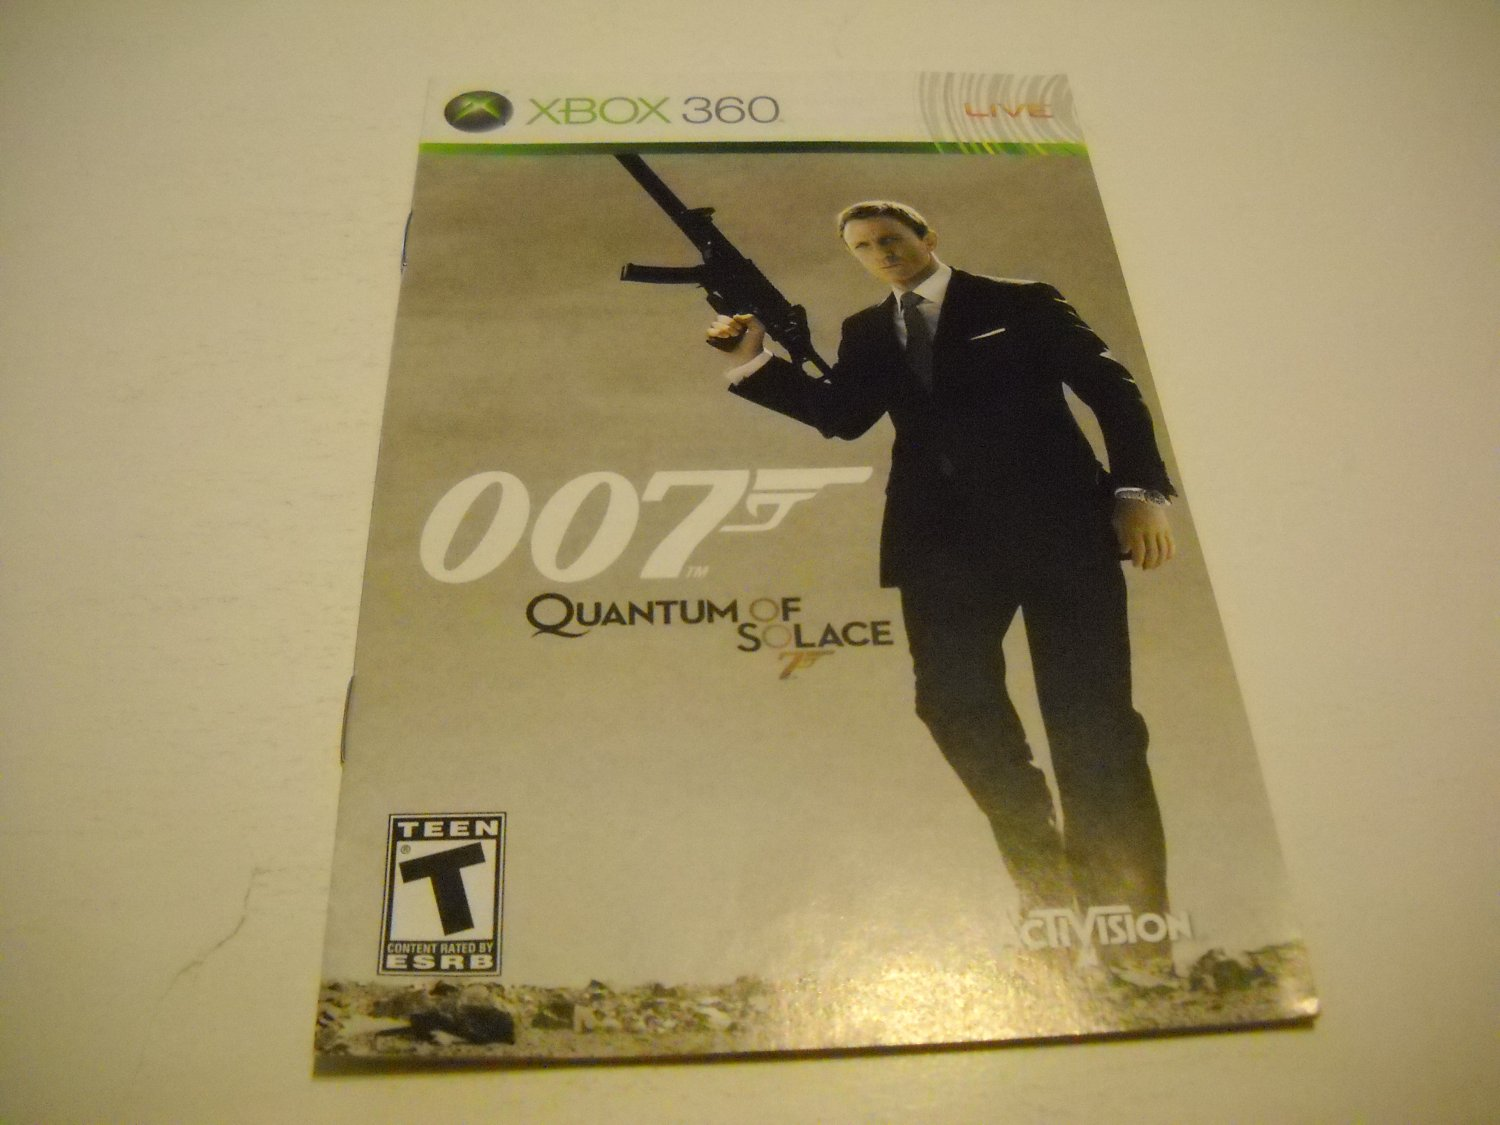 Manual ONLY ~  for 007 Quantum of Solace   - Xbox 360 Instruction Booklet